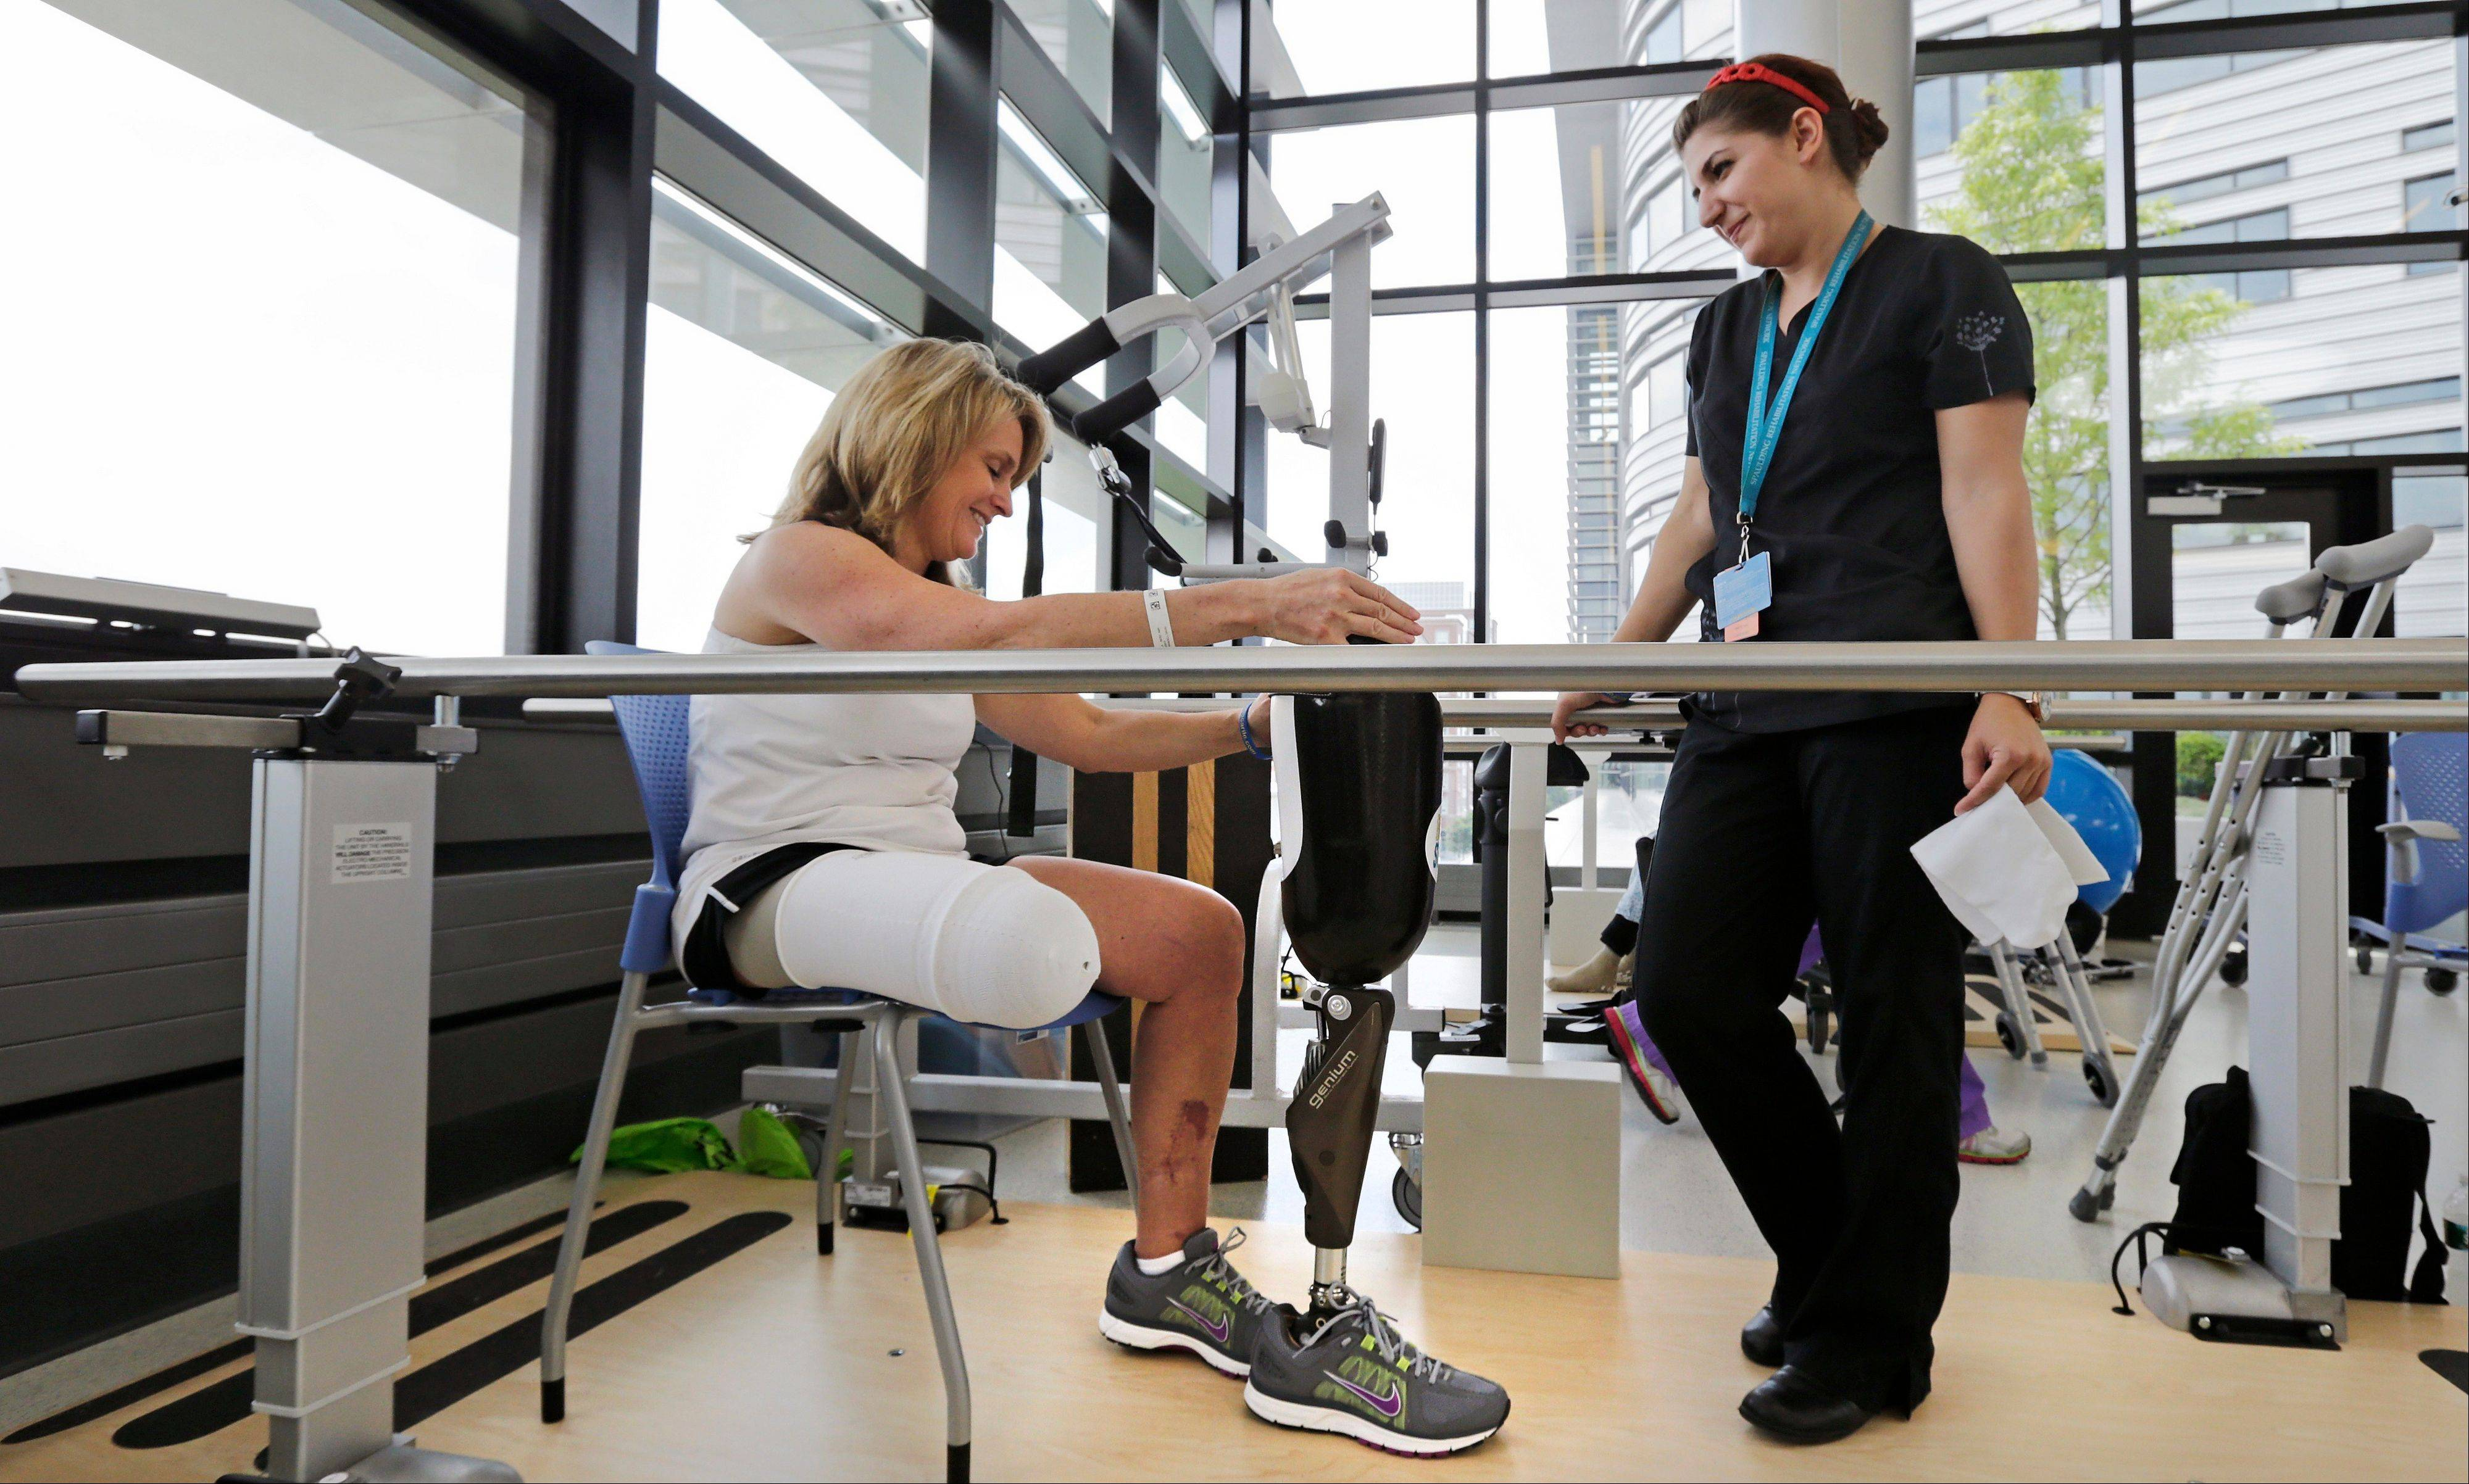 Boston Marathon bombing survivor Sdoia talks with physical therapist Dara Casparian.